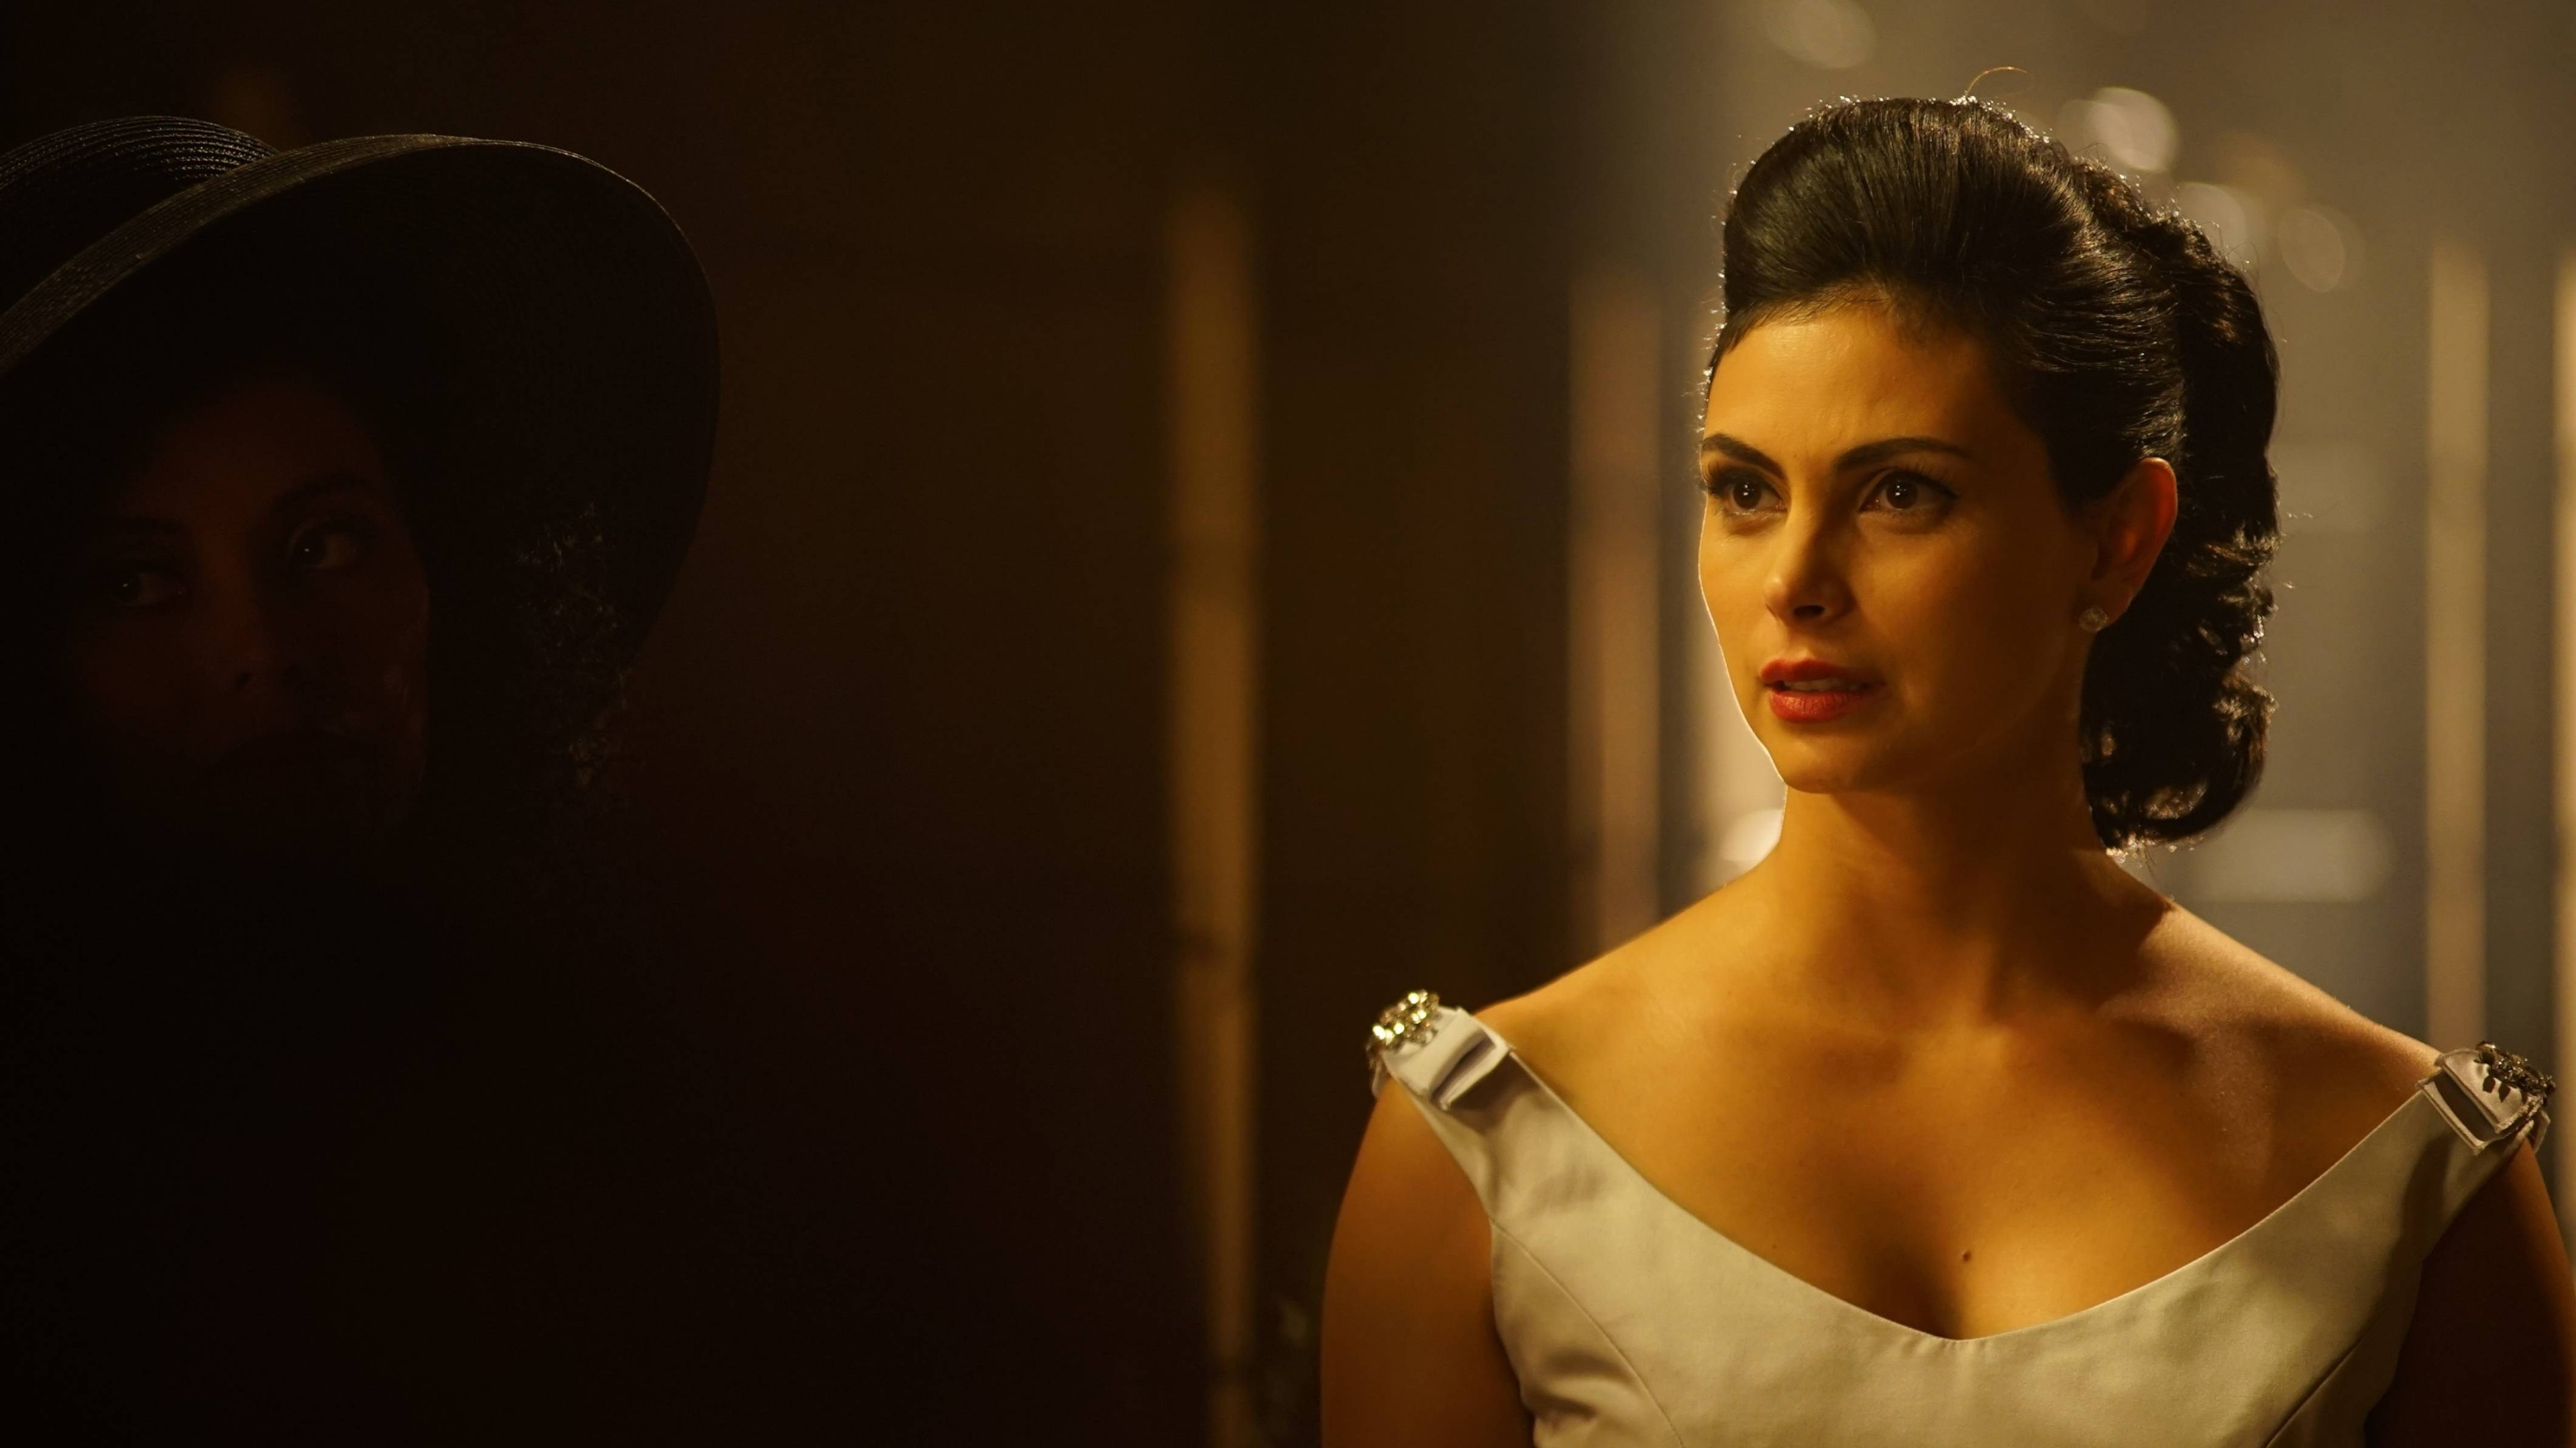 3840x2159 - Morena Baccarin Wallpapers 23